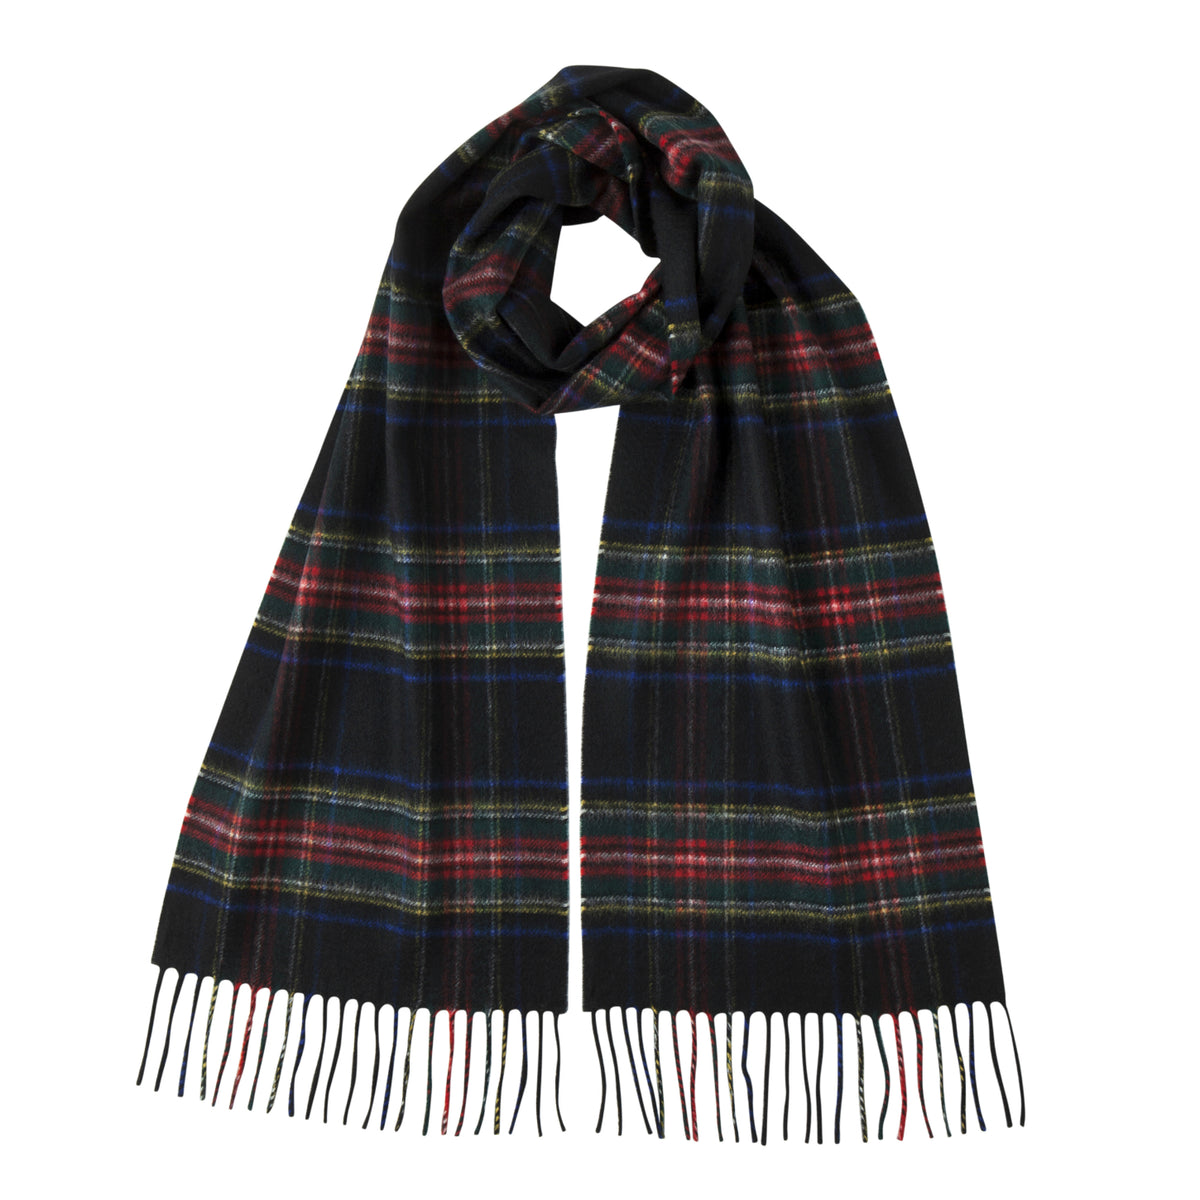 Johnsons of Elgin | Black Stewart Tartan Check Cashmere Scarf | buy at The Cashmere Choice | London